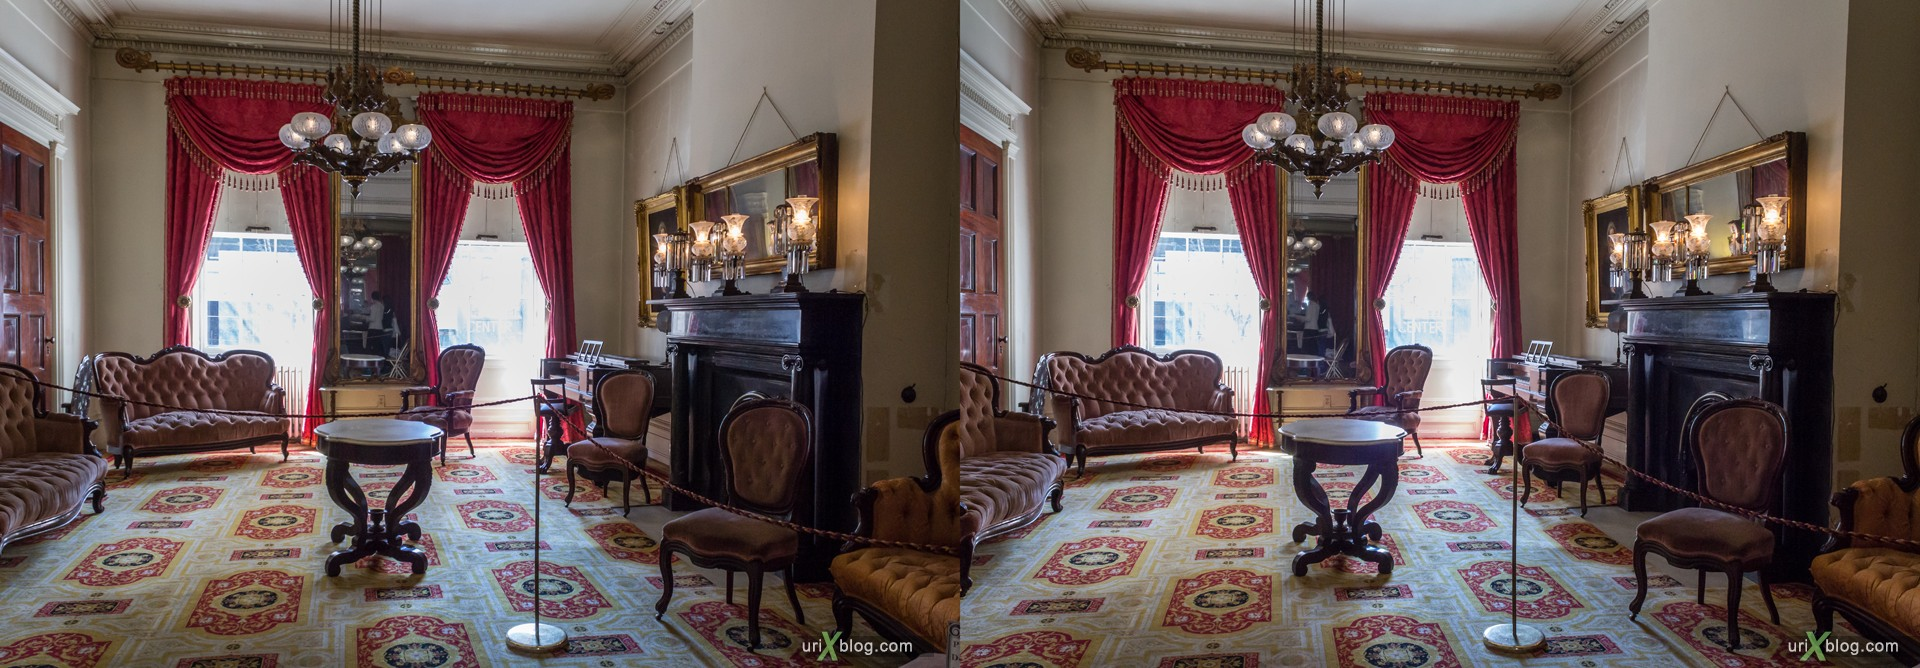 2013, Merchant's House Museum, NYC, New York City, USA, 3D, stereo pair, cross-eyed, crossview, cross view stereo pair, stereoscopic